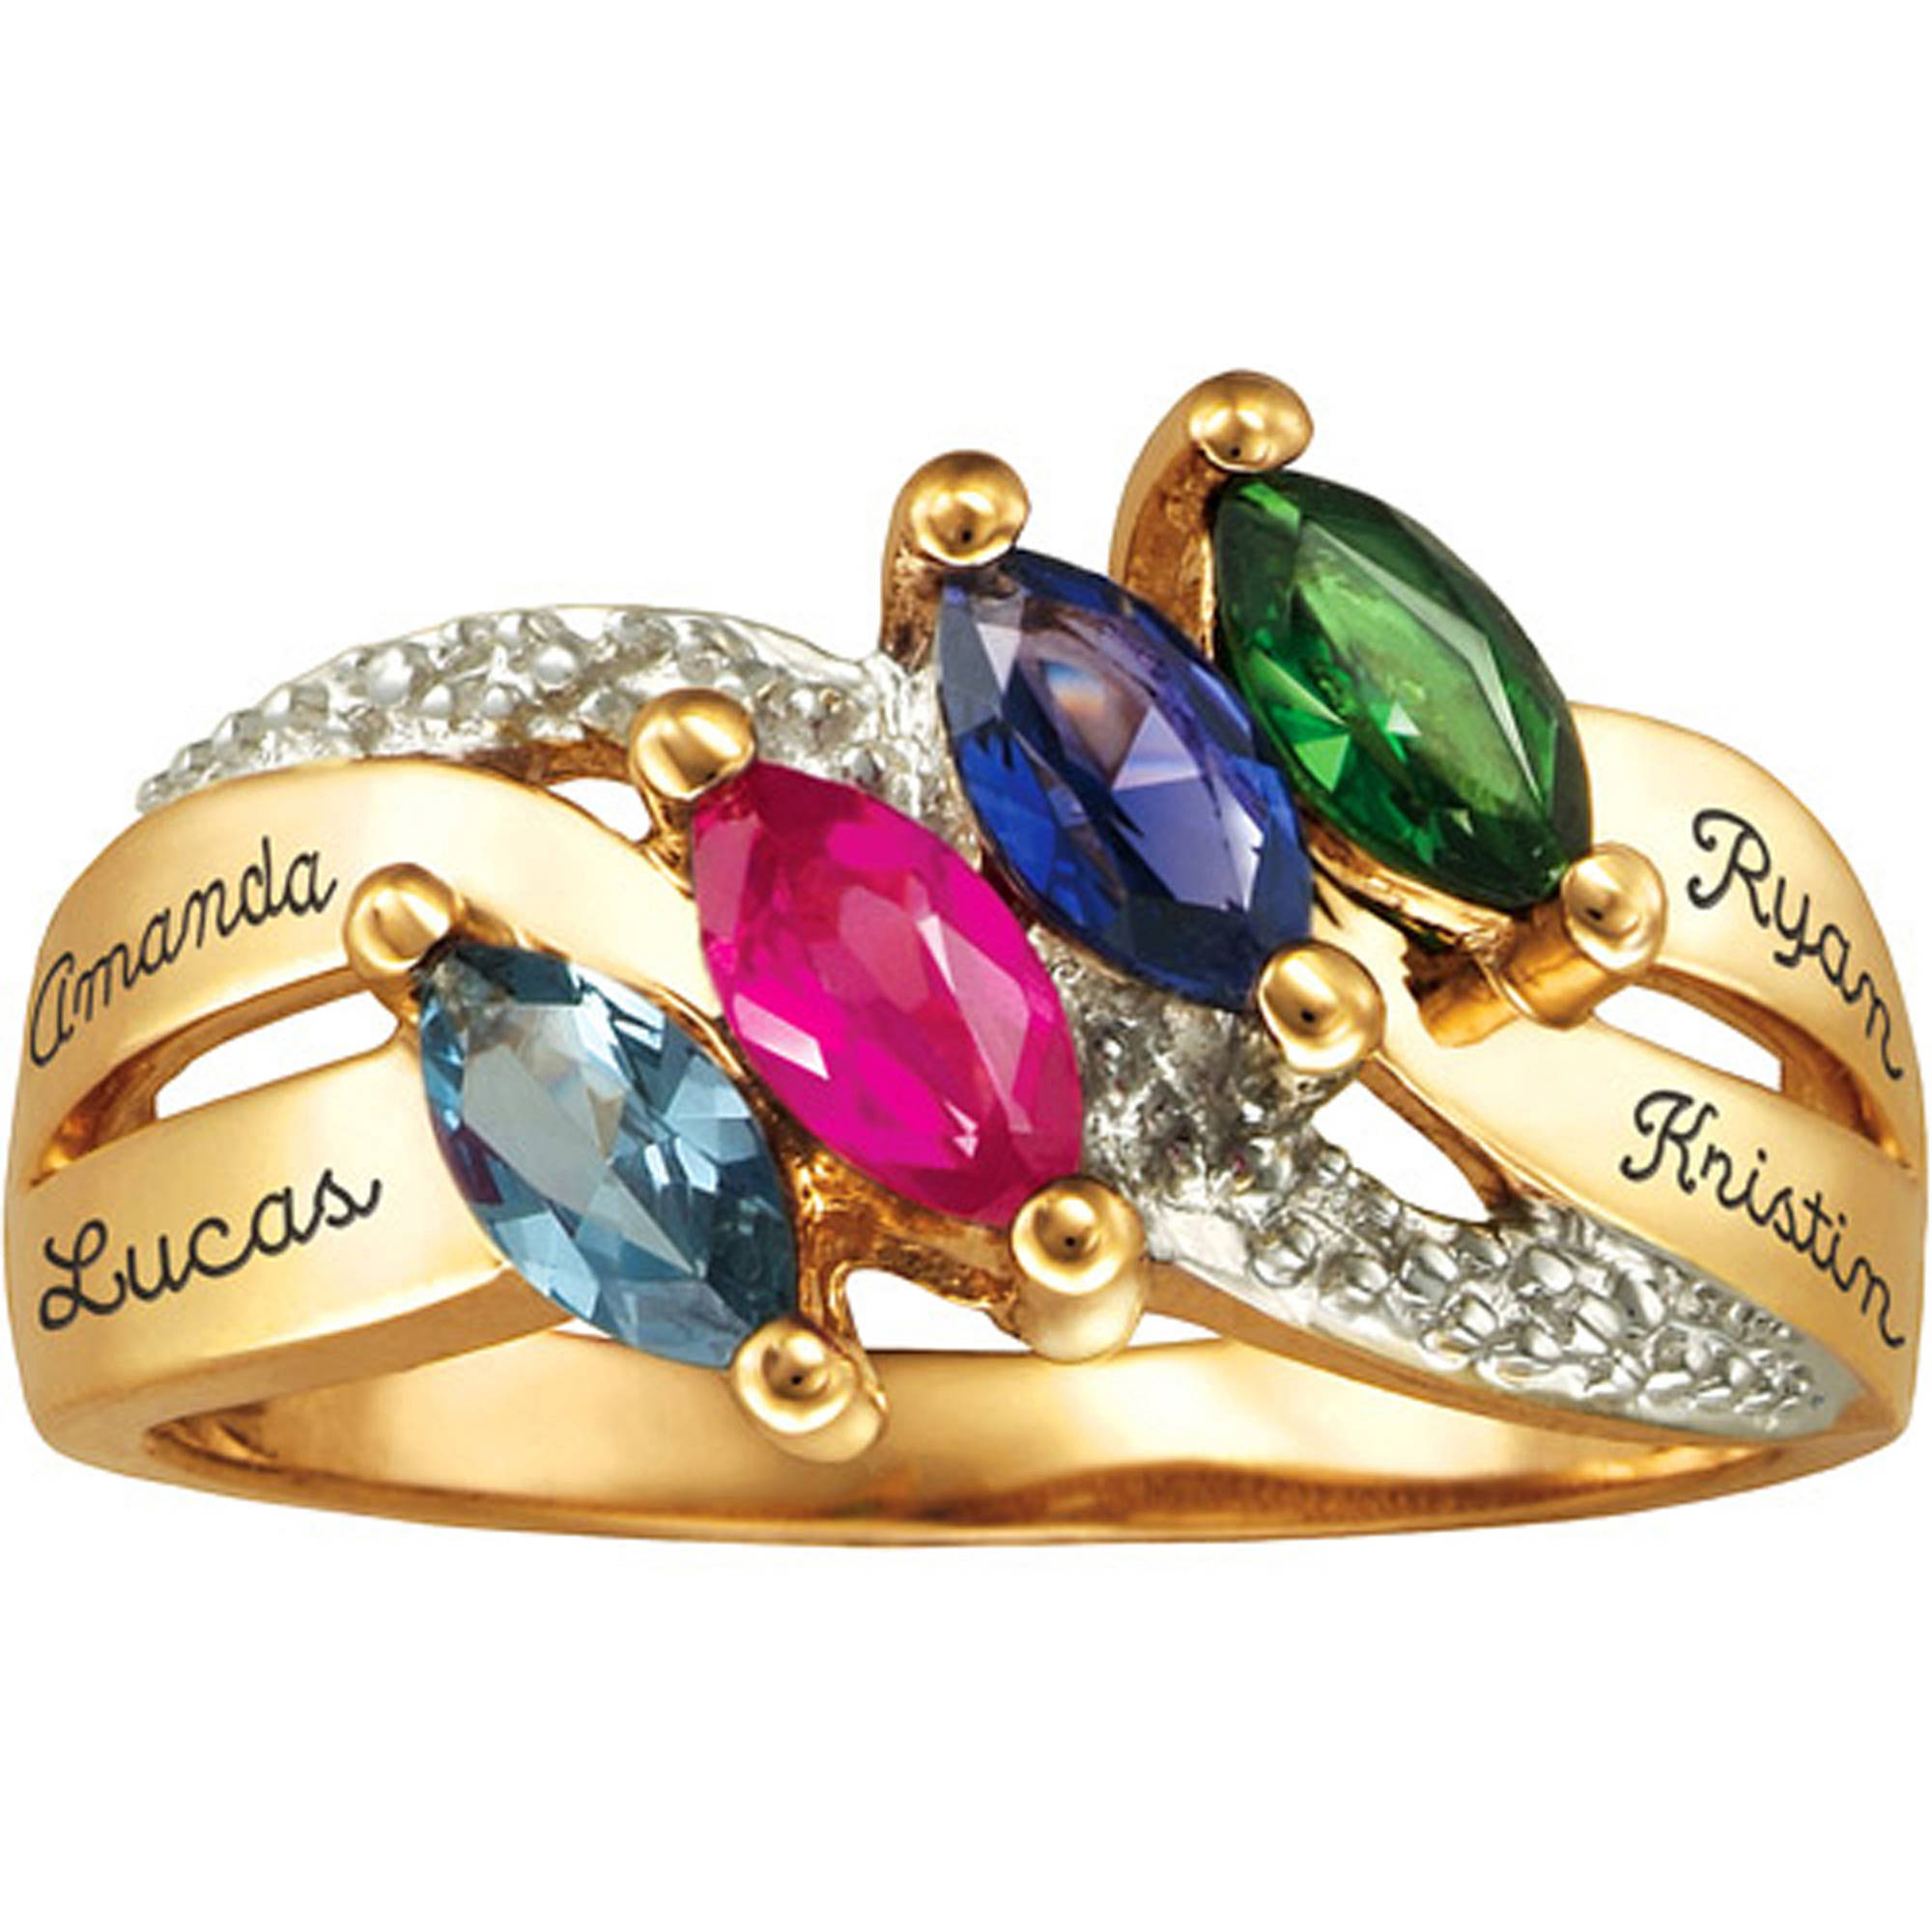 Personalized Keepsake Lustre Mother's Birthstone Ring